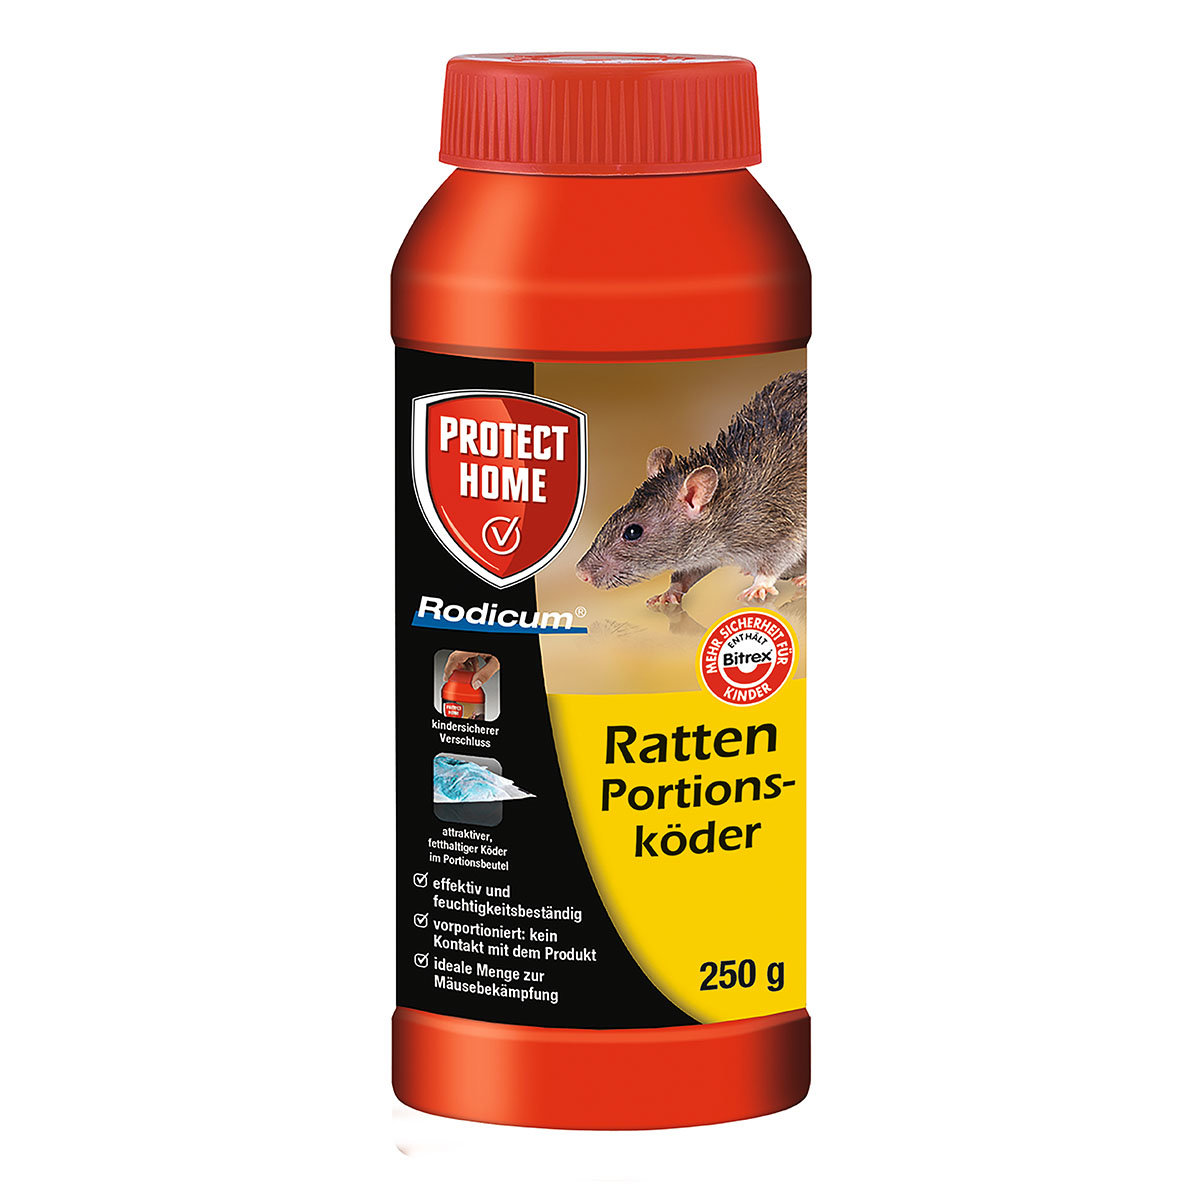 Protect Home Rattenportionsköder, 12 x 250 g